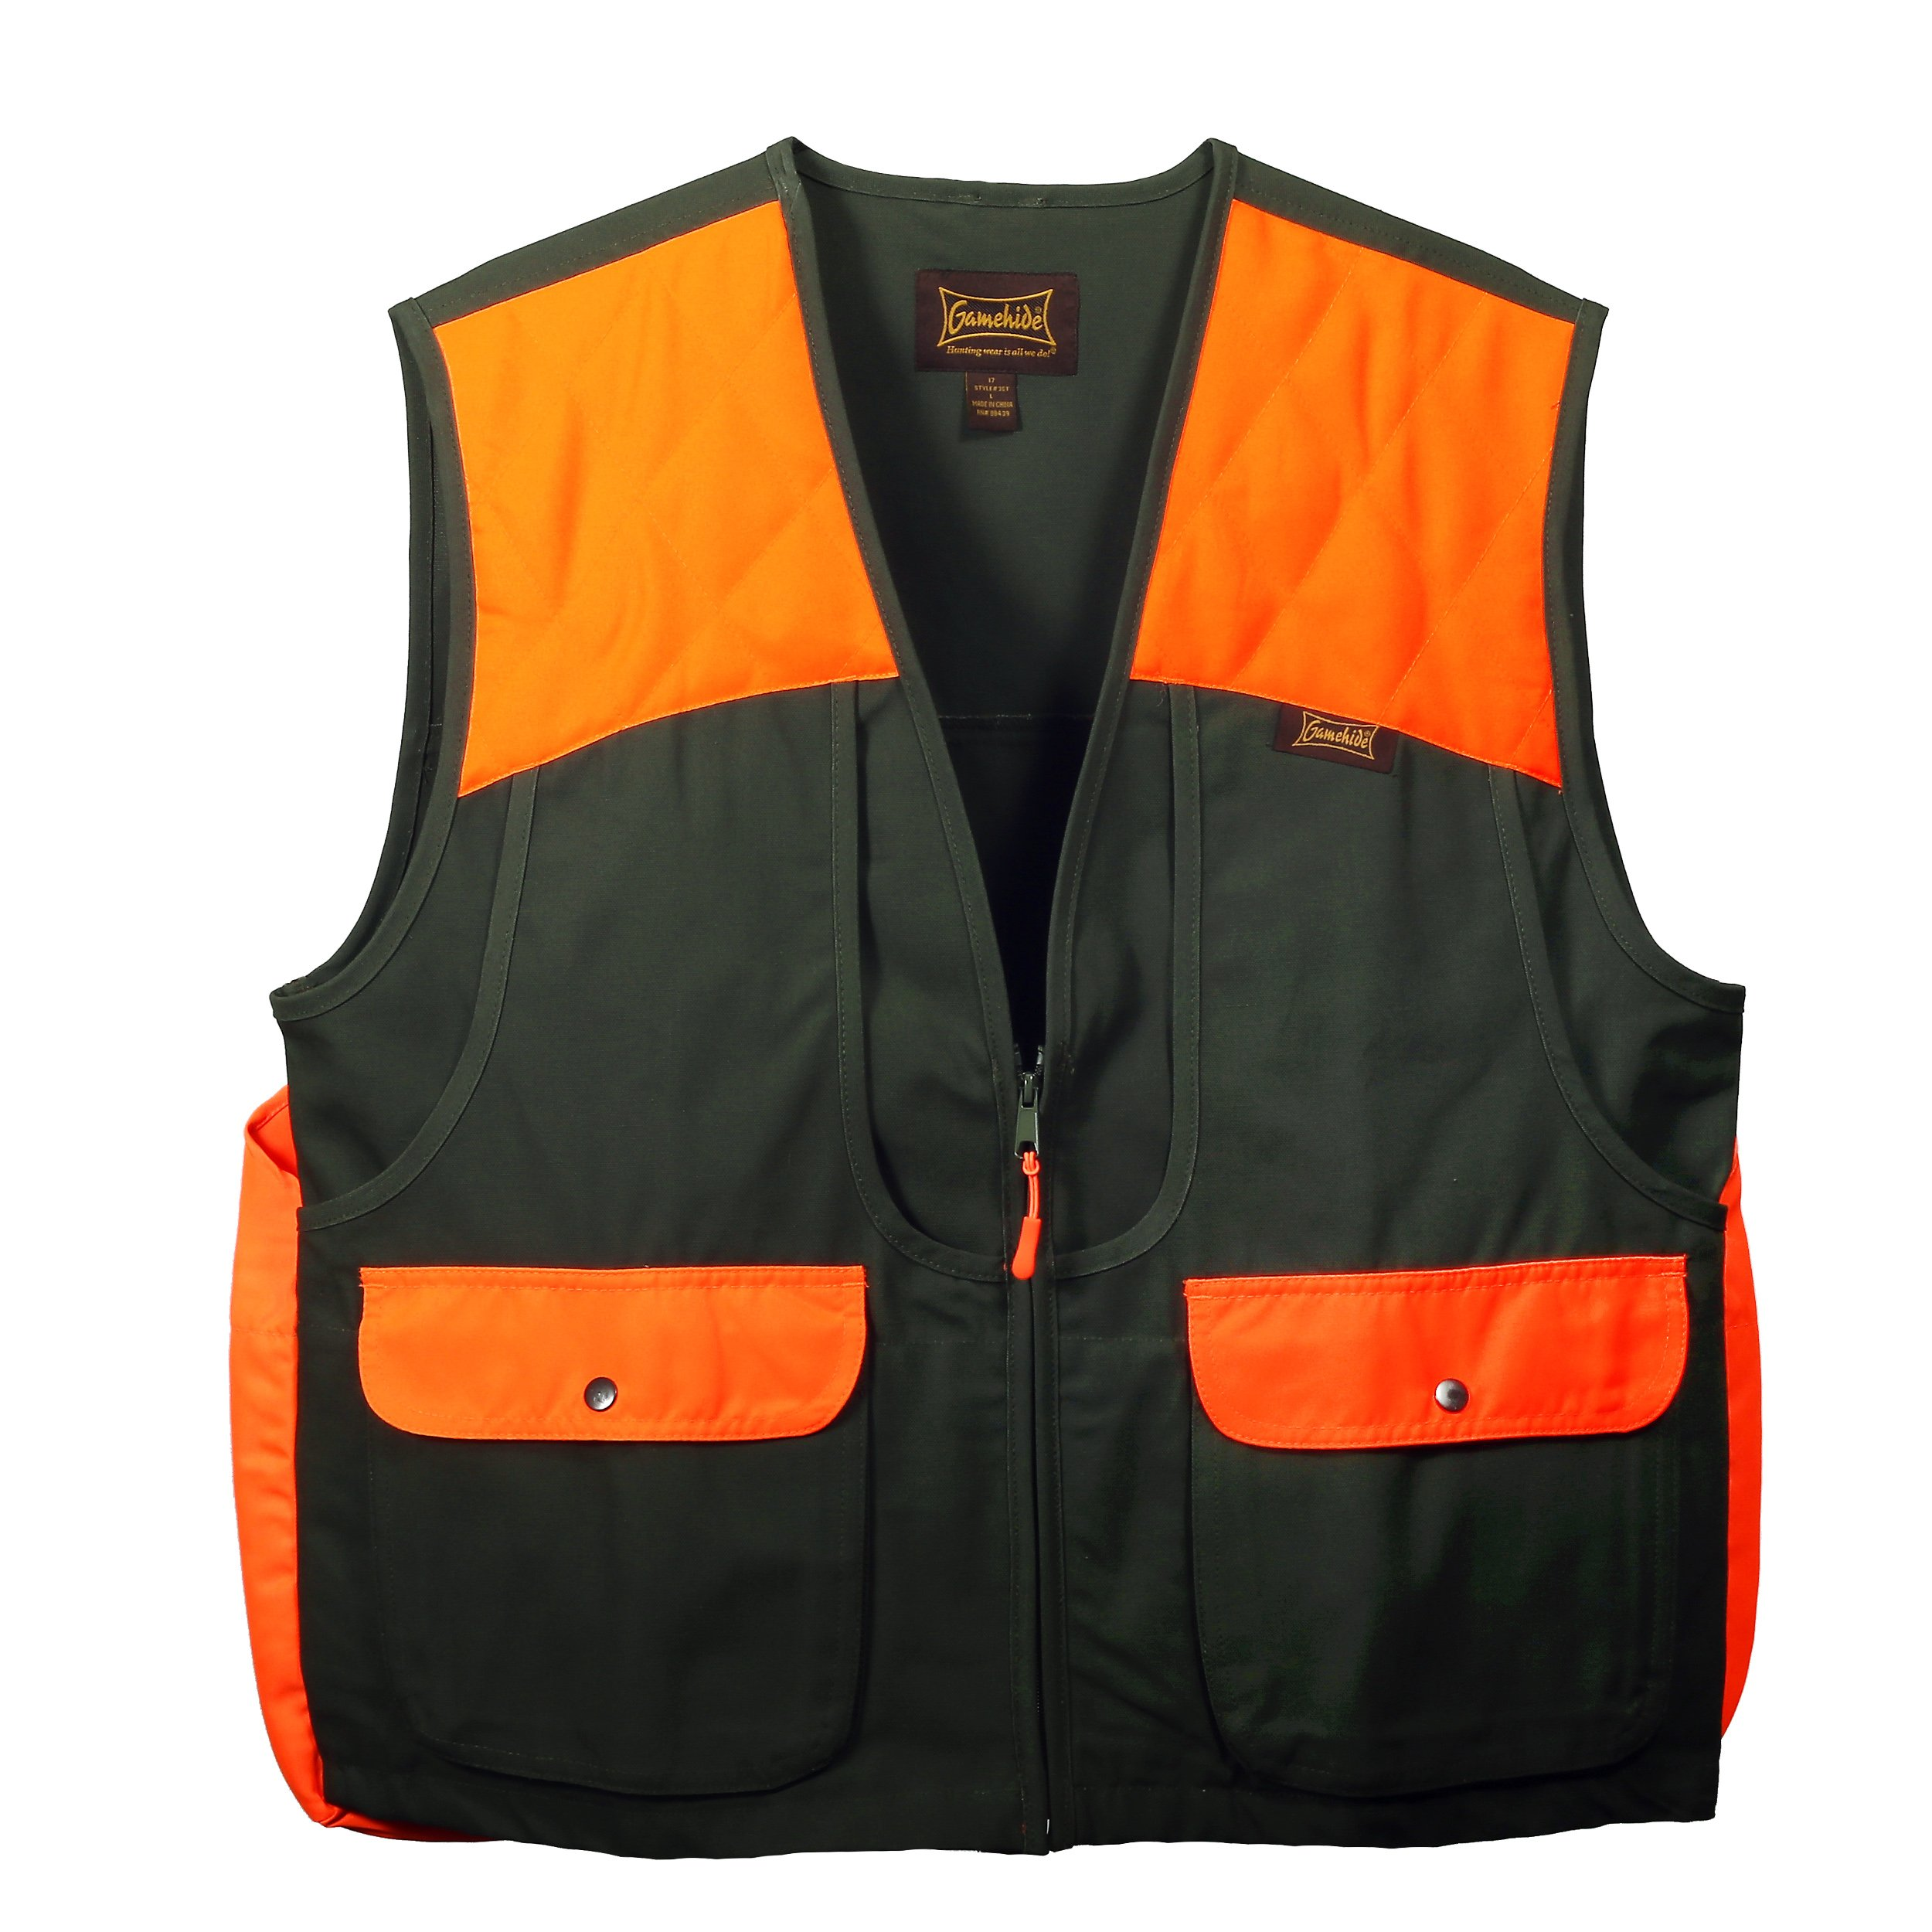 Gamehide Men's Upland Vest (Olive/Orange, Large) by Gamehide